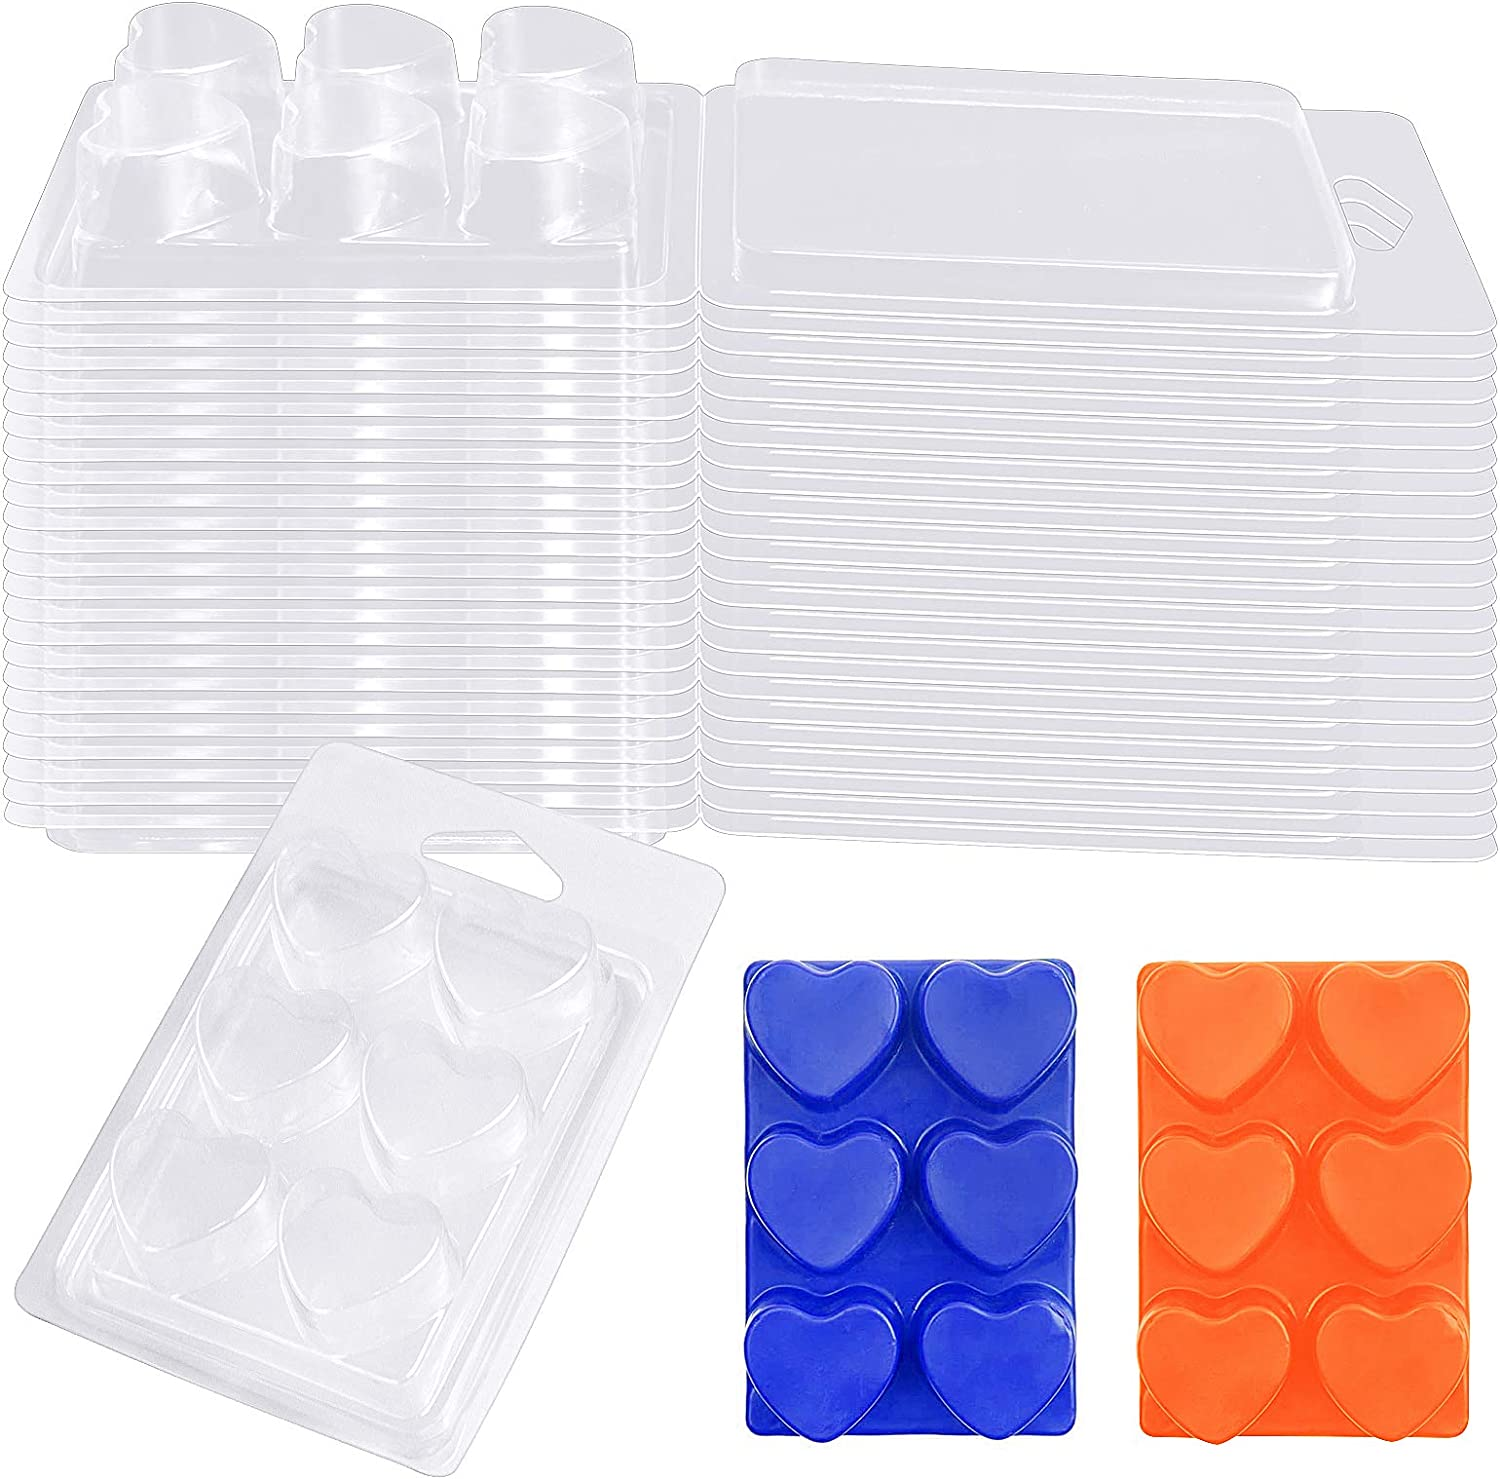 Meetory Wax Melt Molds Clear Heart Plastic Clamshel Empty Manufacturer regenerated product Ranking TOP6 Shape